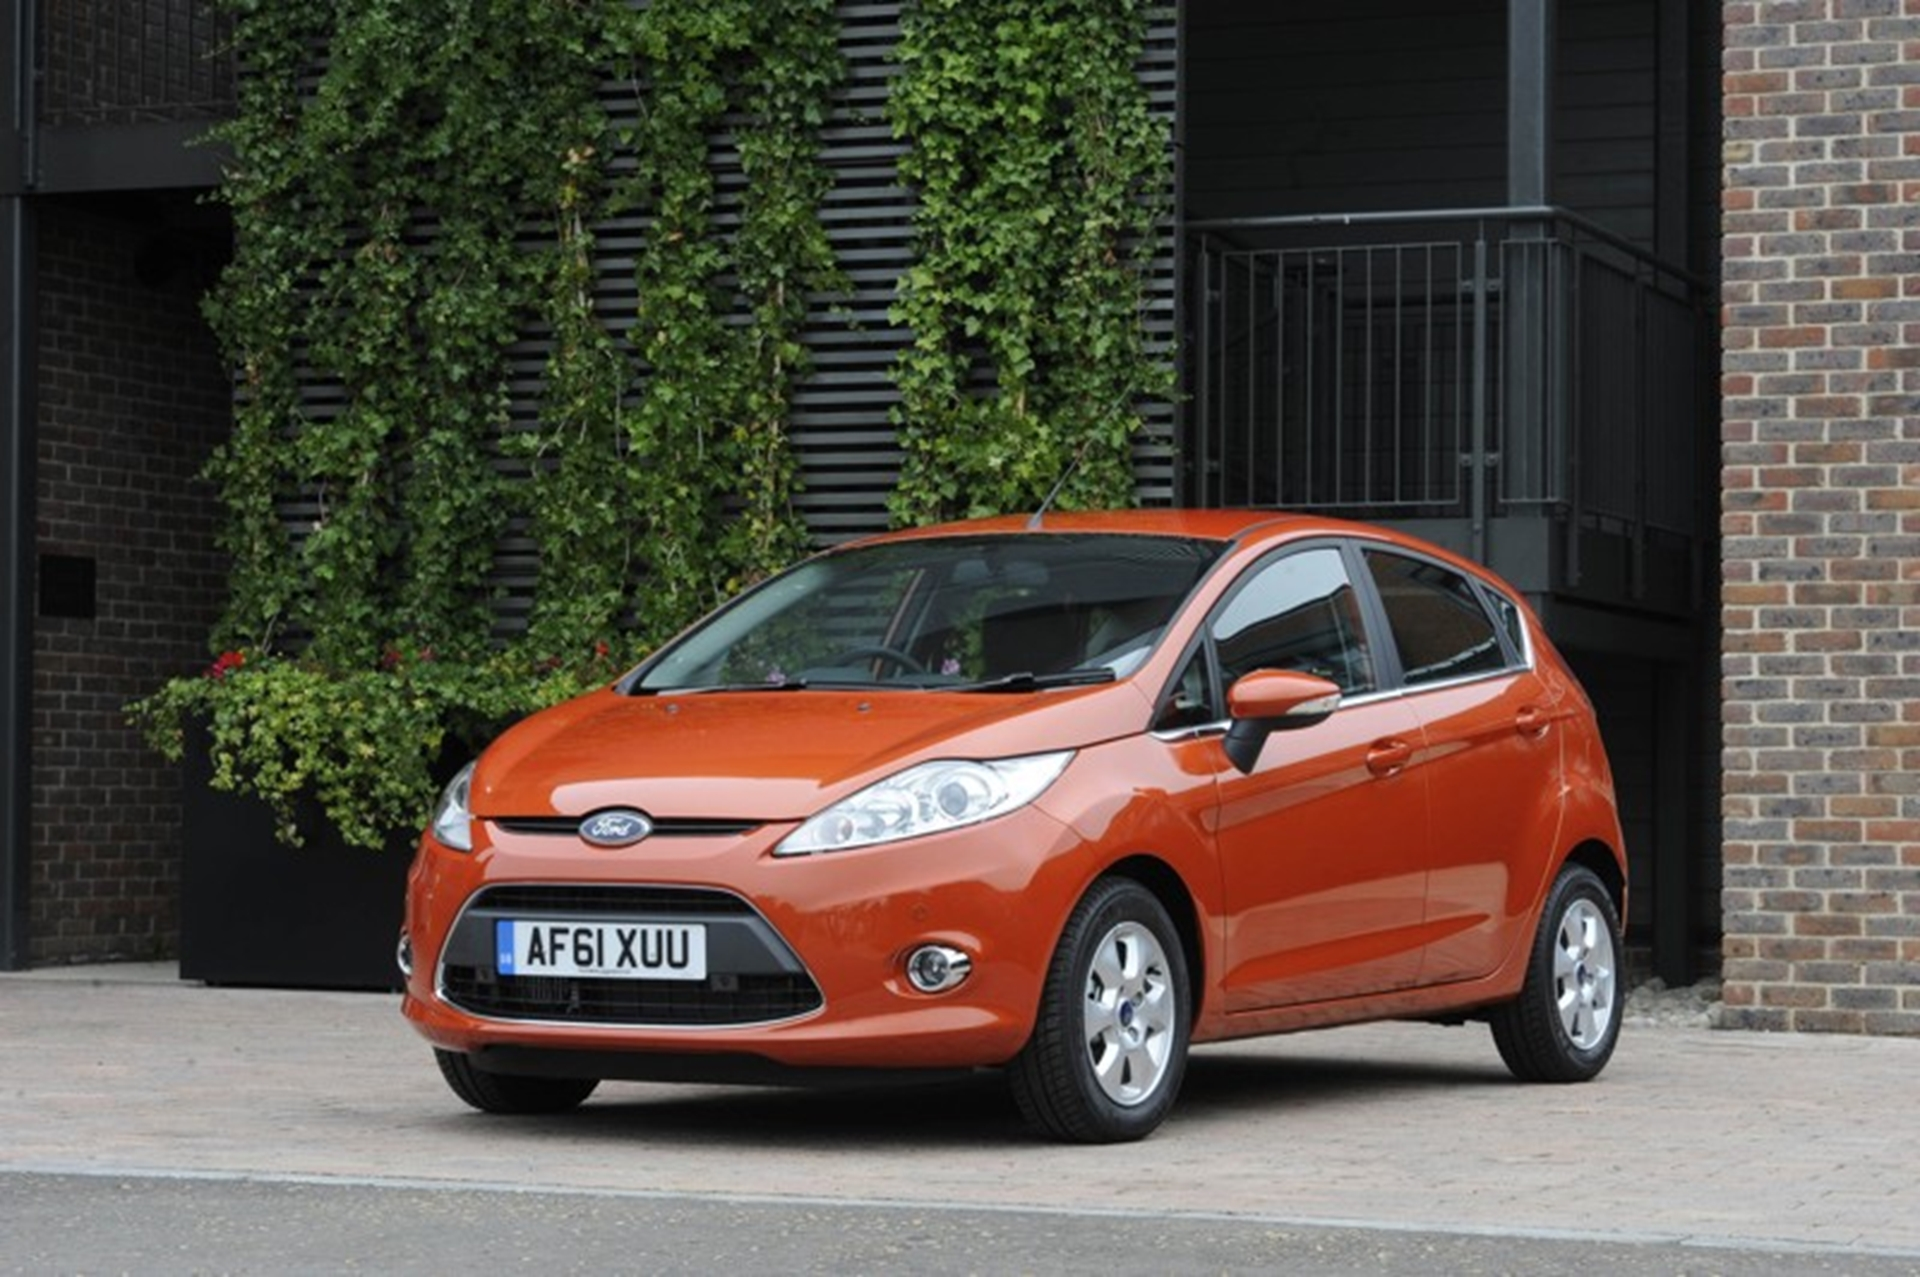 The Ford Fiesta was the UK best seller in November